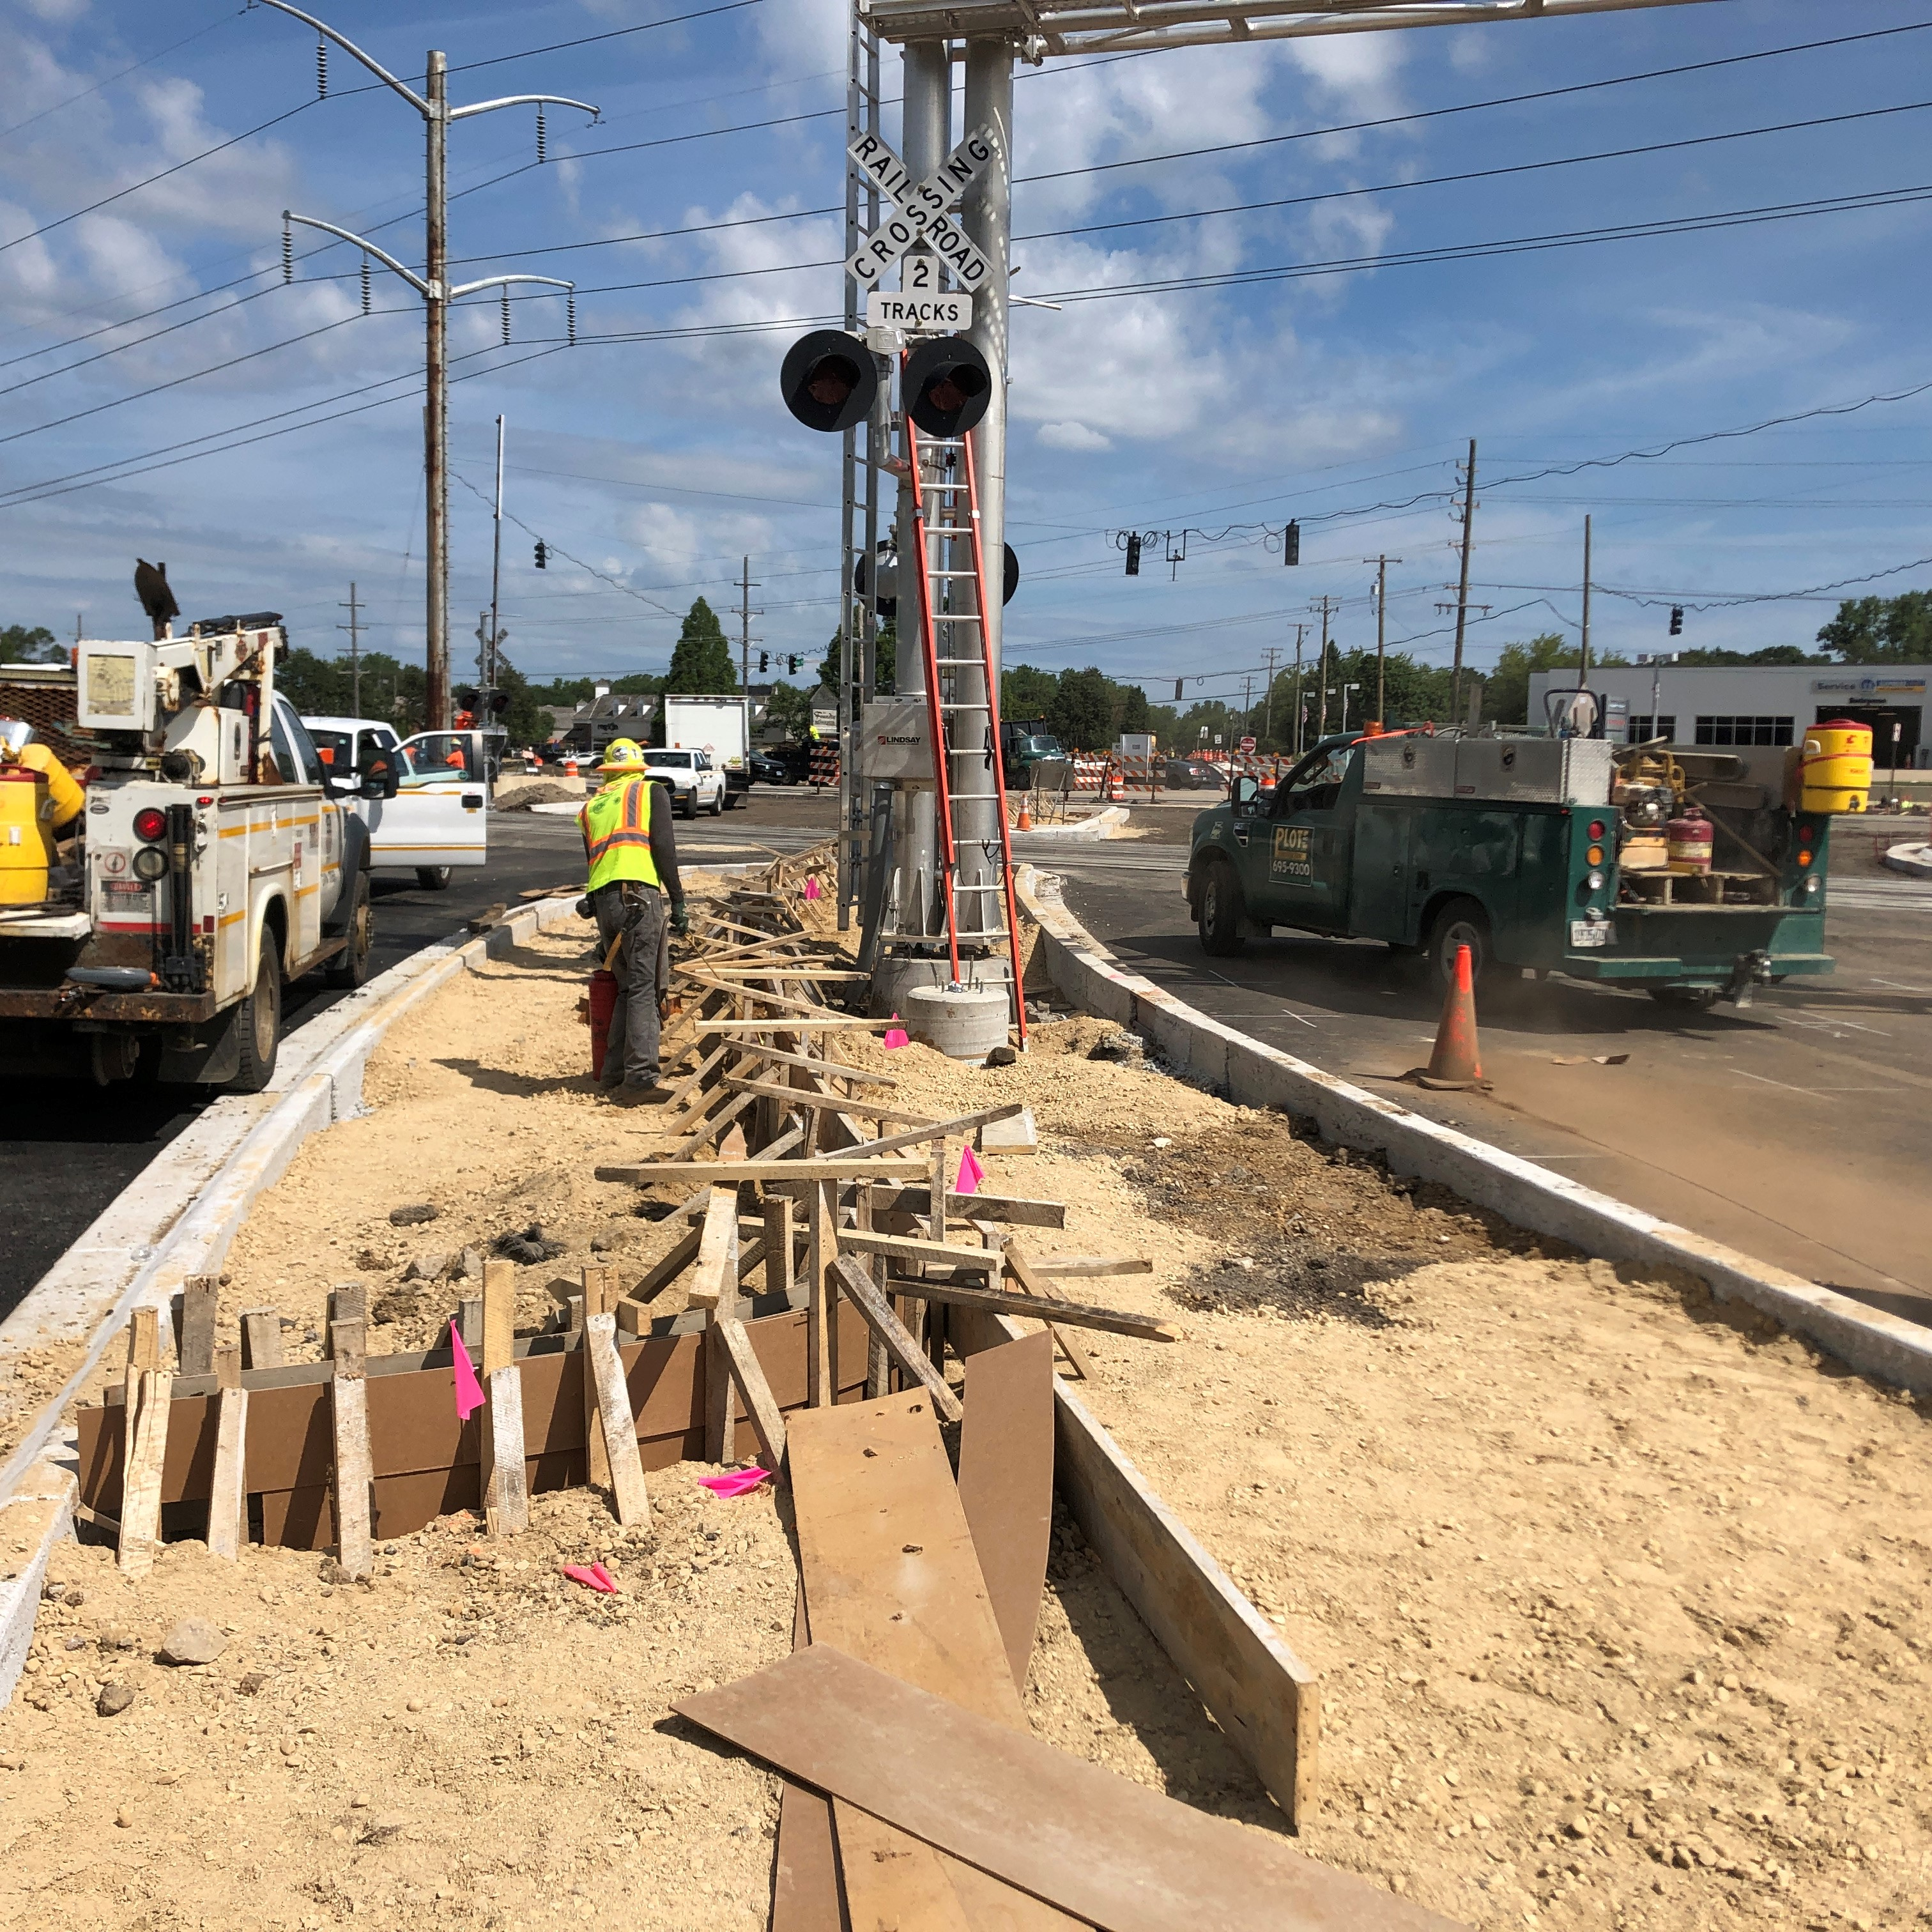 08/05/2020 Concrete Median on Hart Road South of the Railroad Tracks